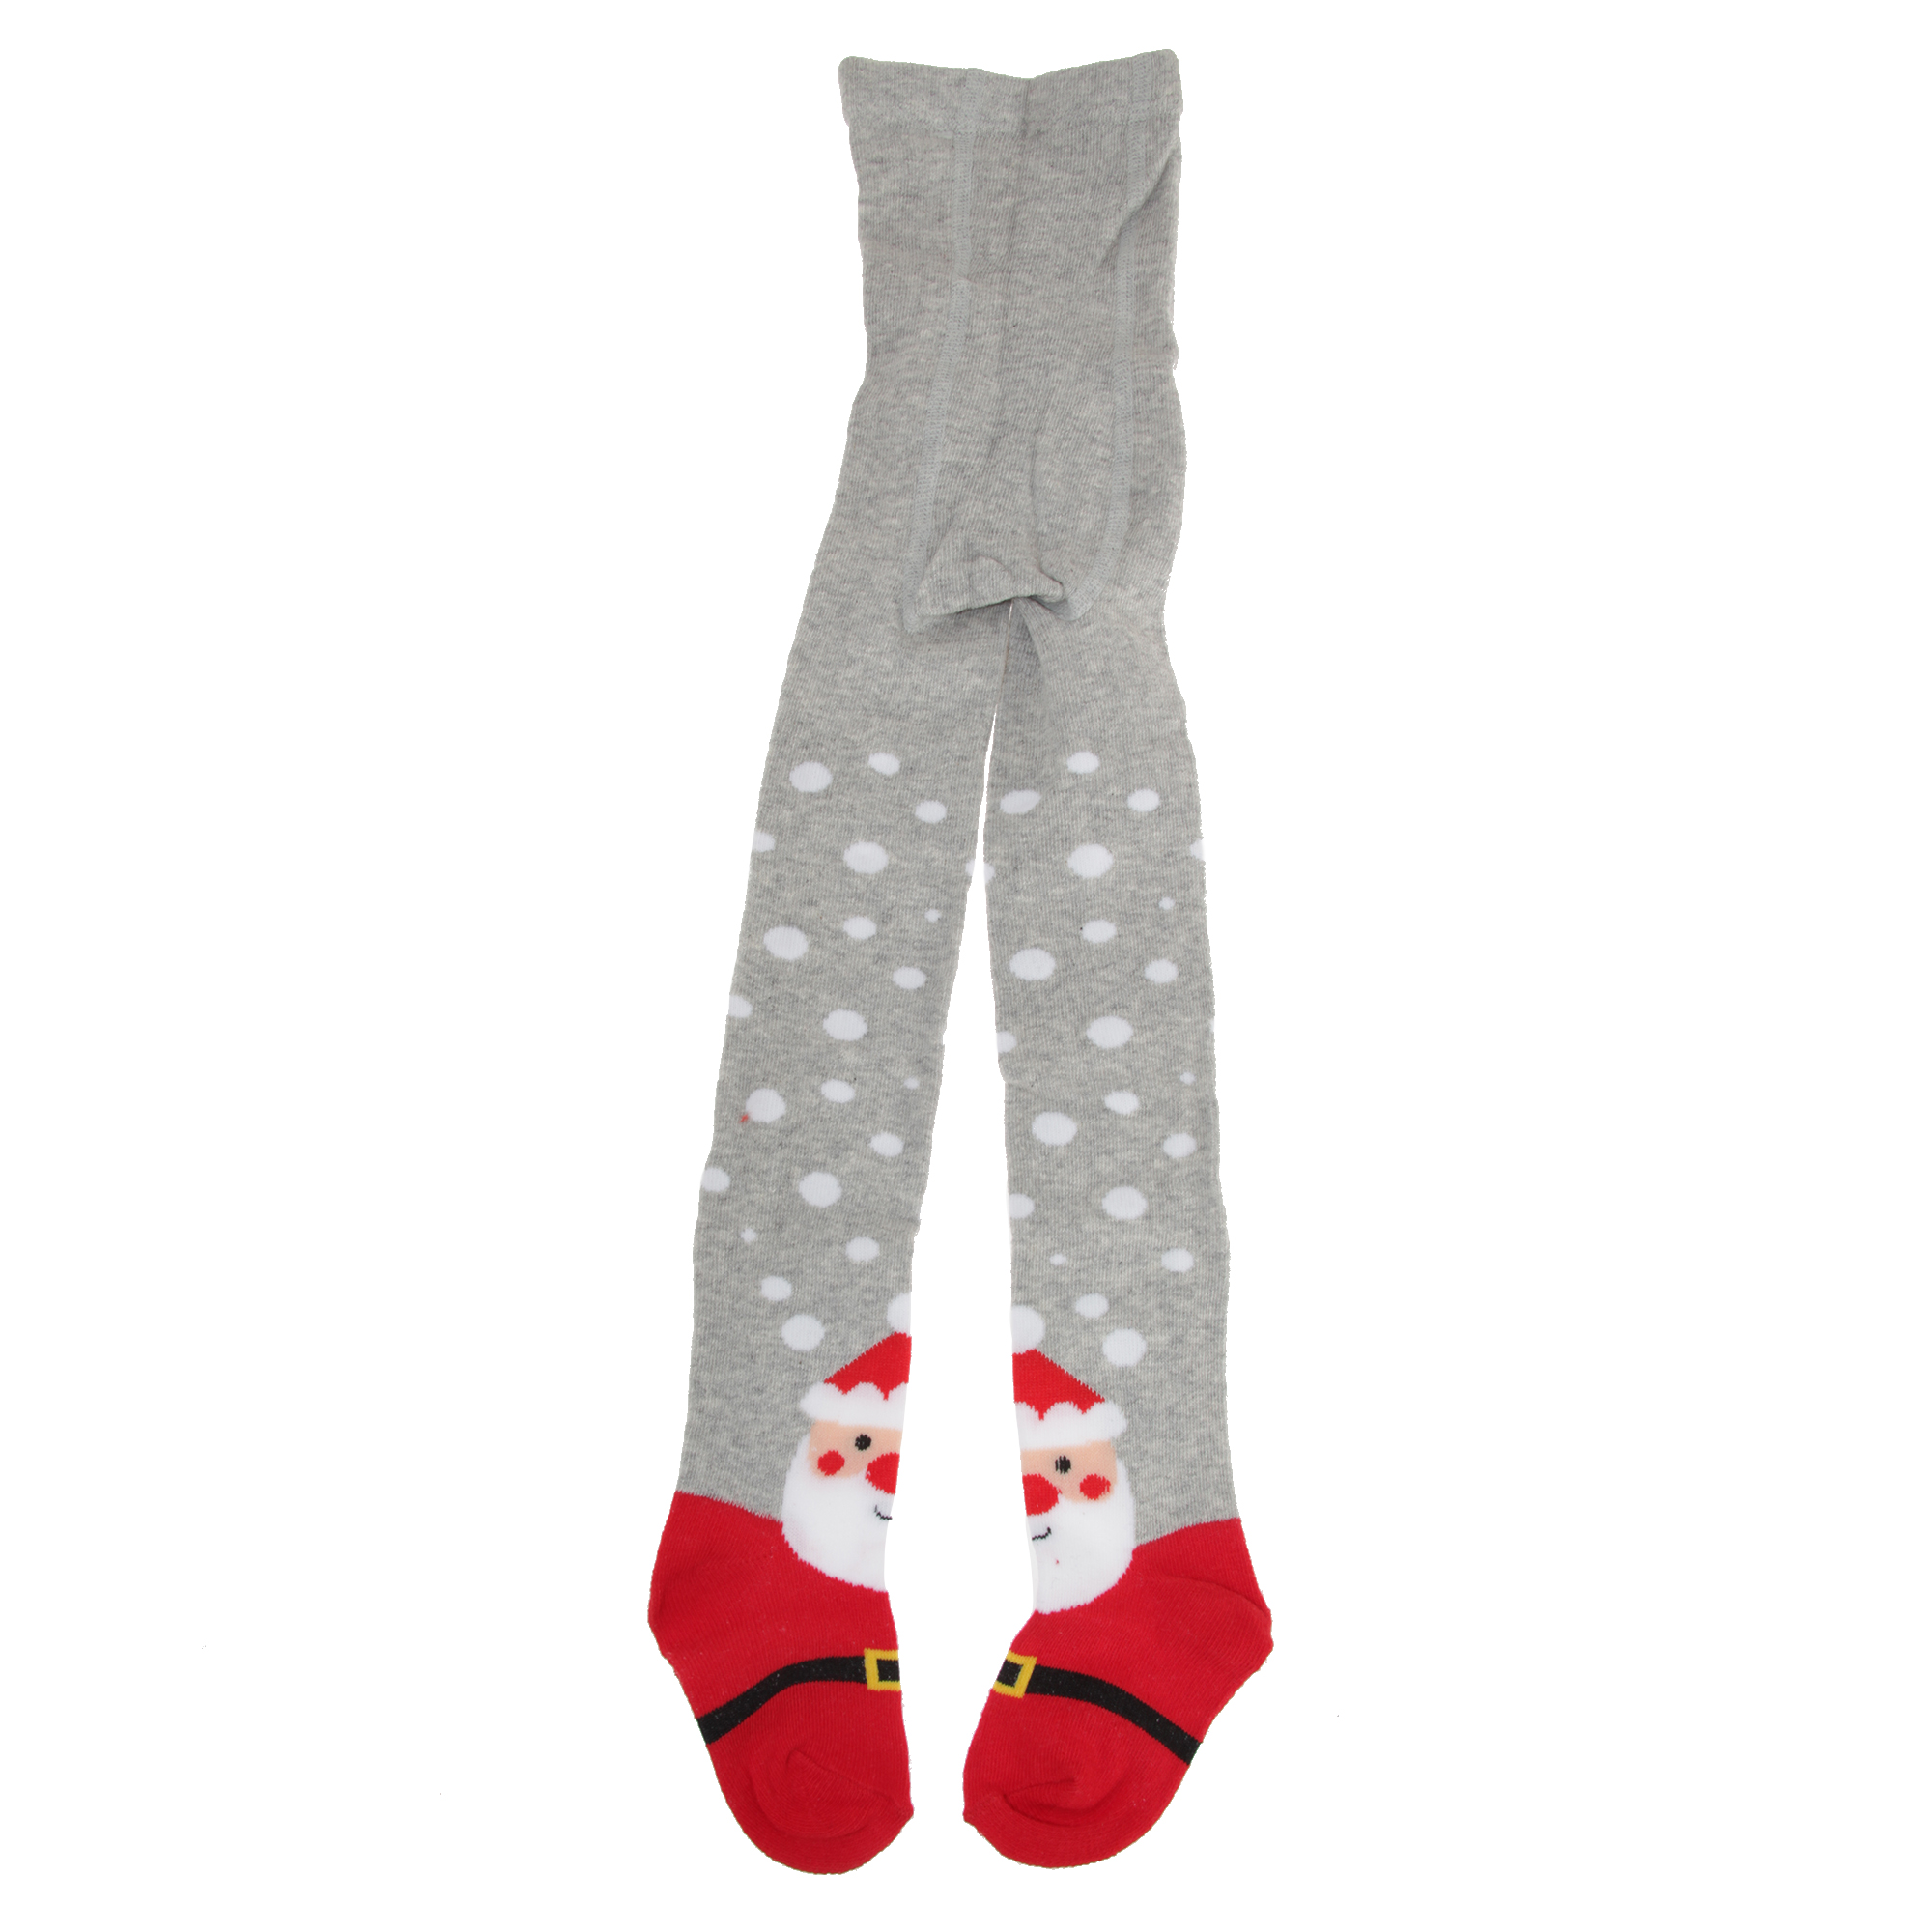 Childrens Girls Cotton Rich Festive Tights (1 Pair) (7/8 Years) (Grey)